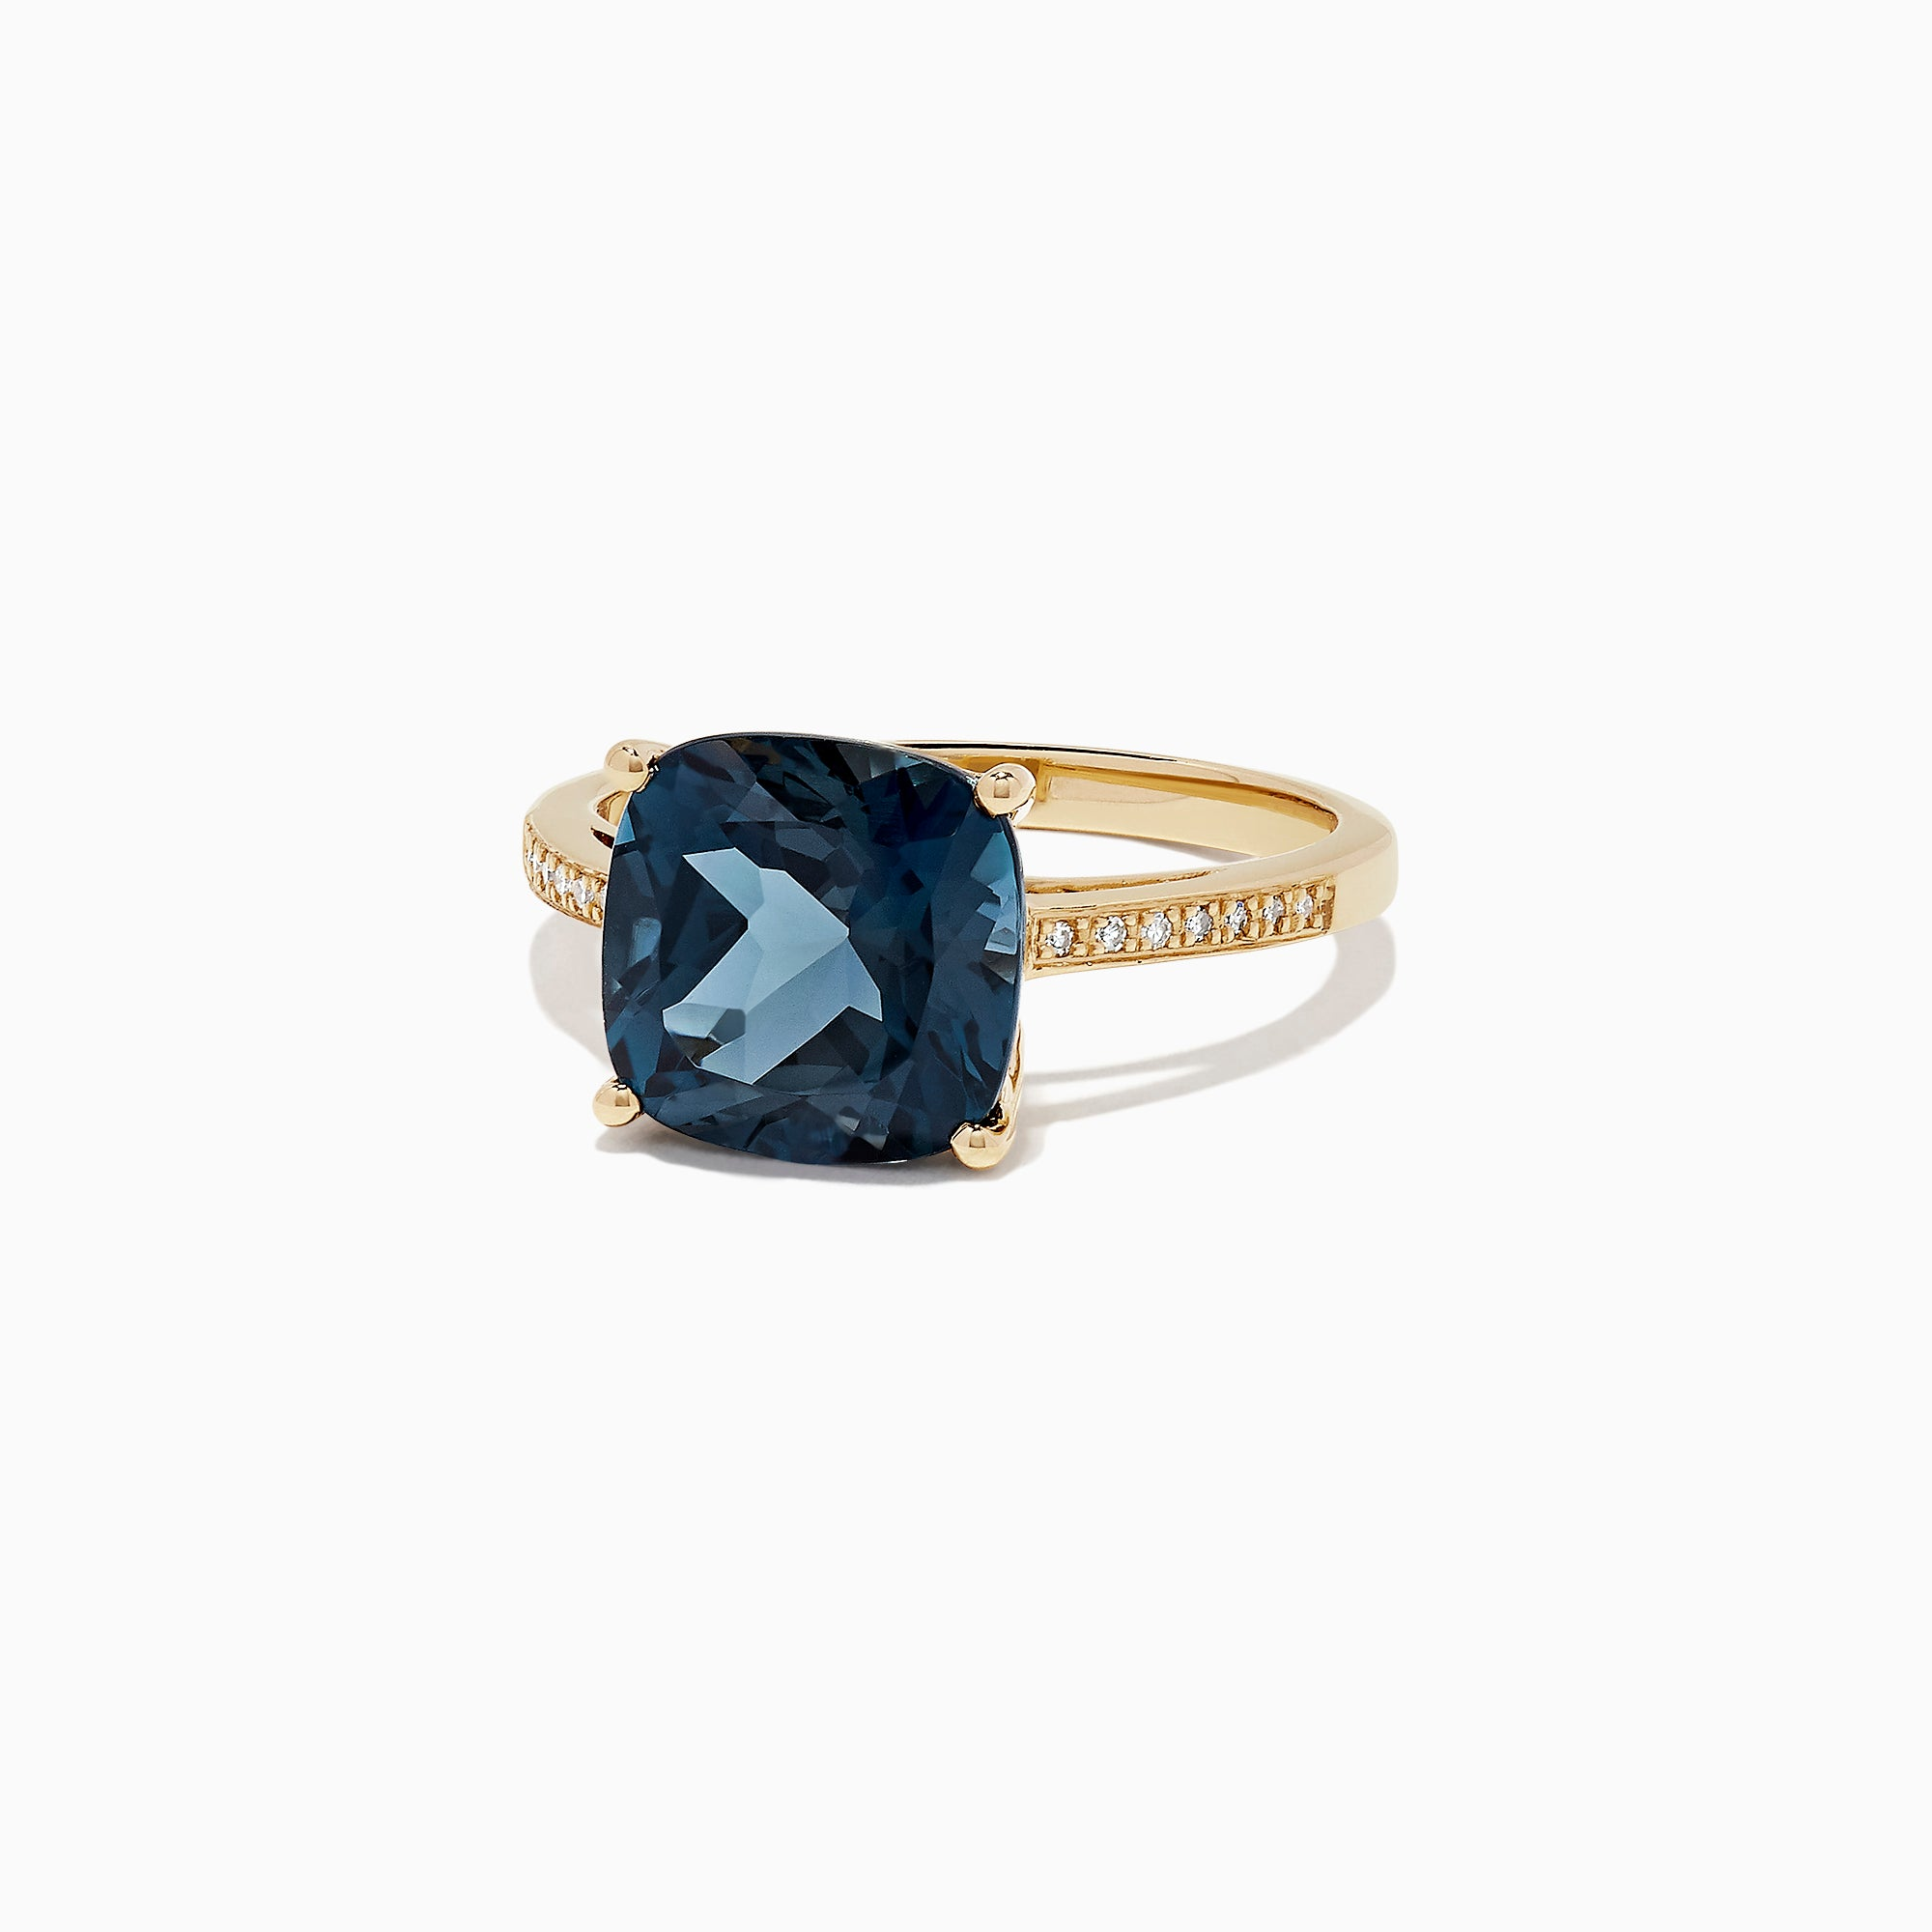 Effy Ocean Bleu 14K Yellow Gold London Blue Topaz & Diamond Ring, 4.54 TCW